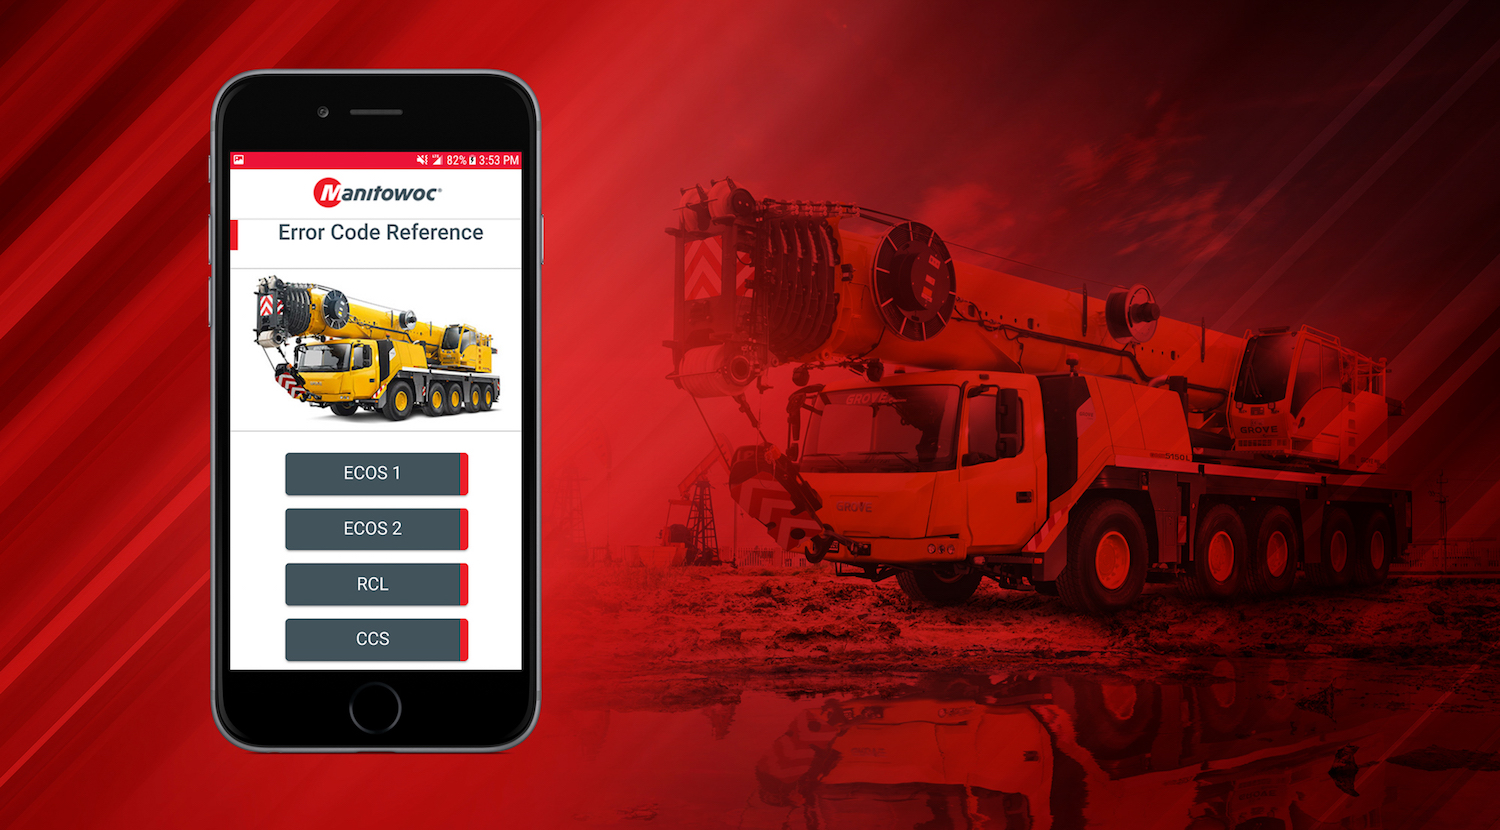 Manitowoc app enables customers to interpret diagnostic codes generated by on-board control systems.